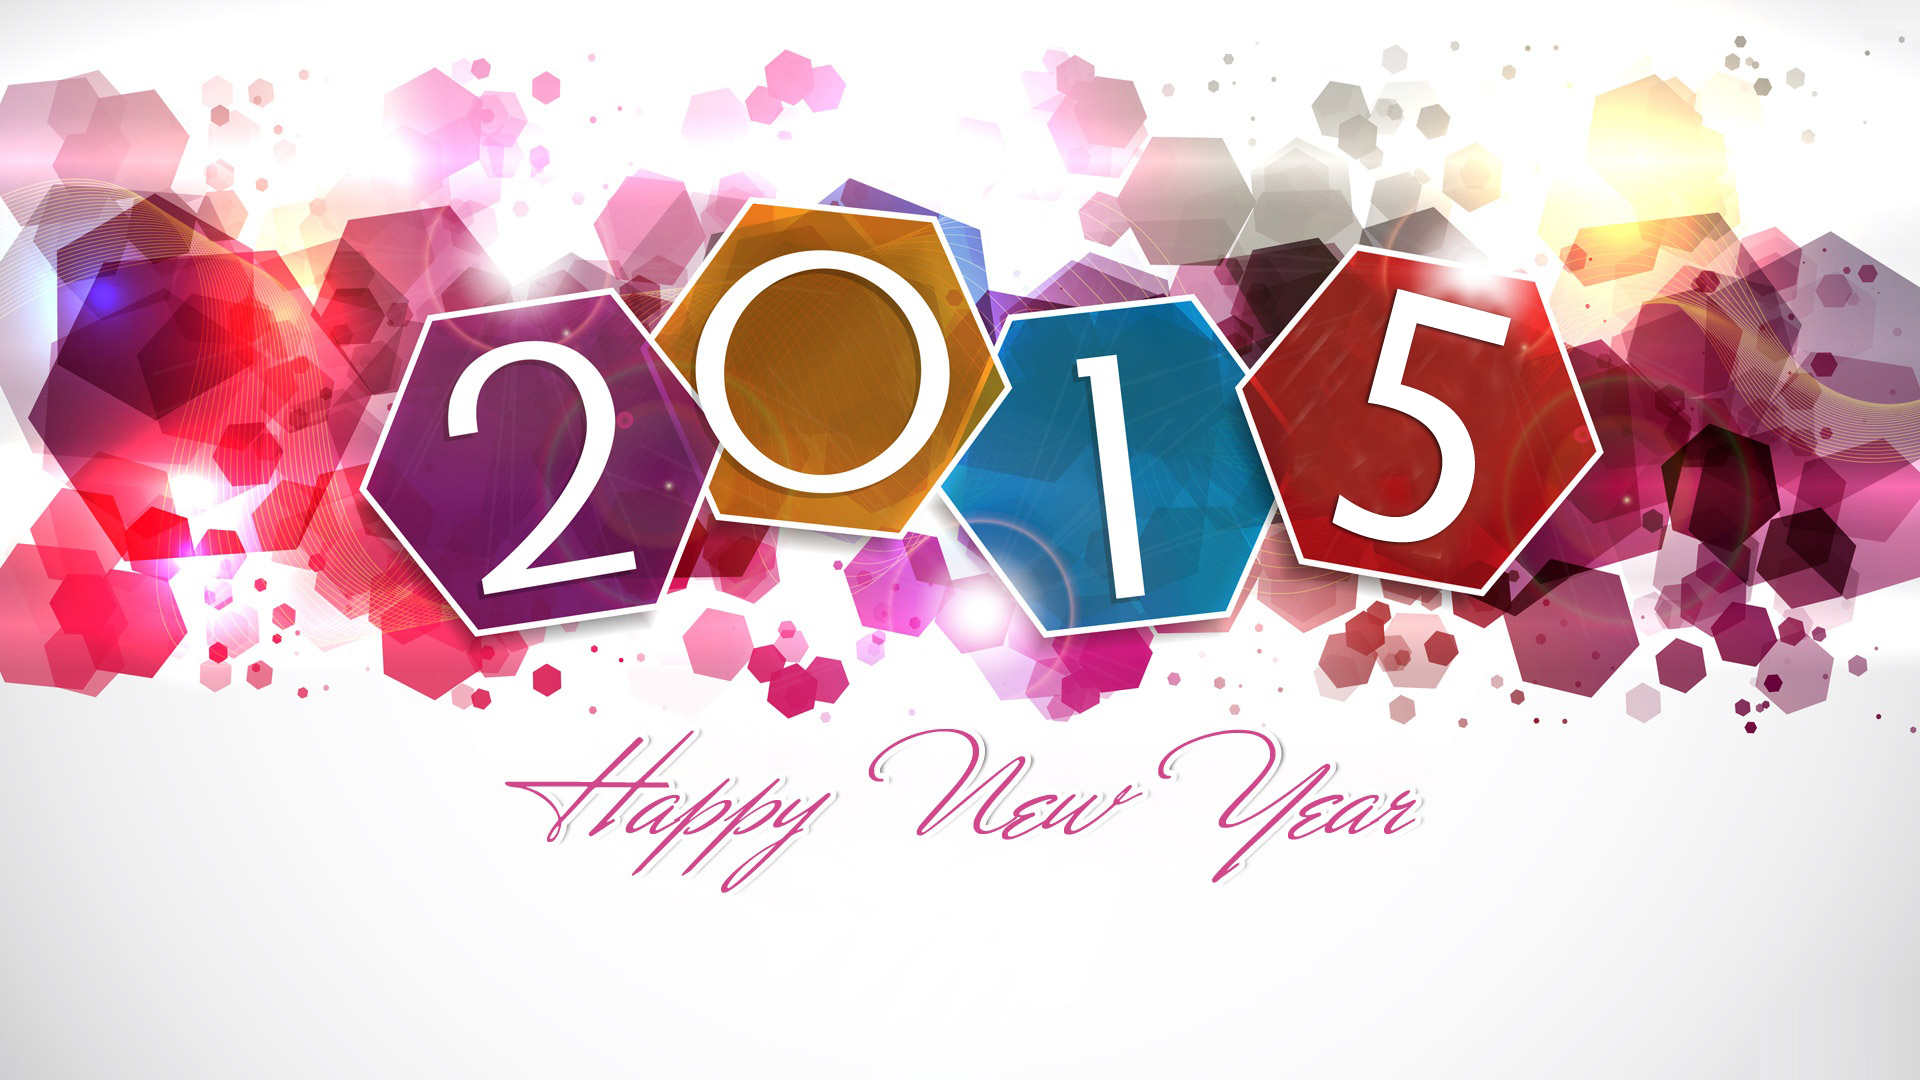 Wallpaper New Year 2015